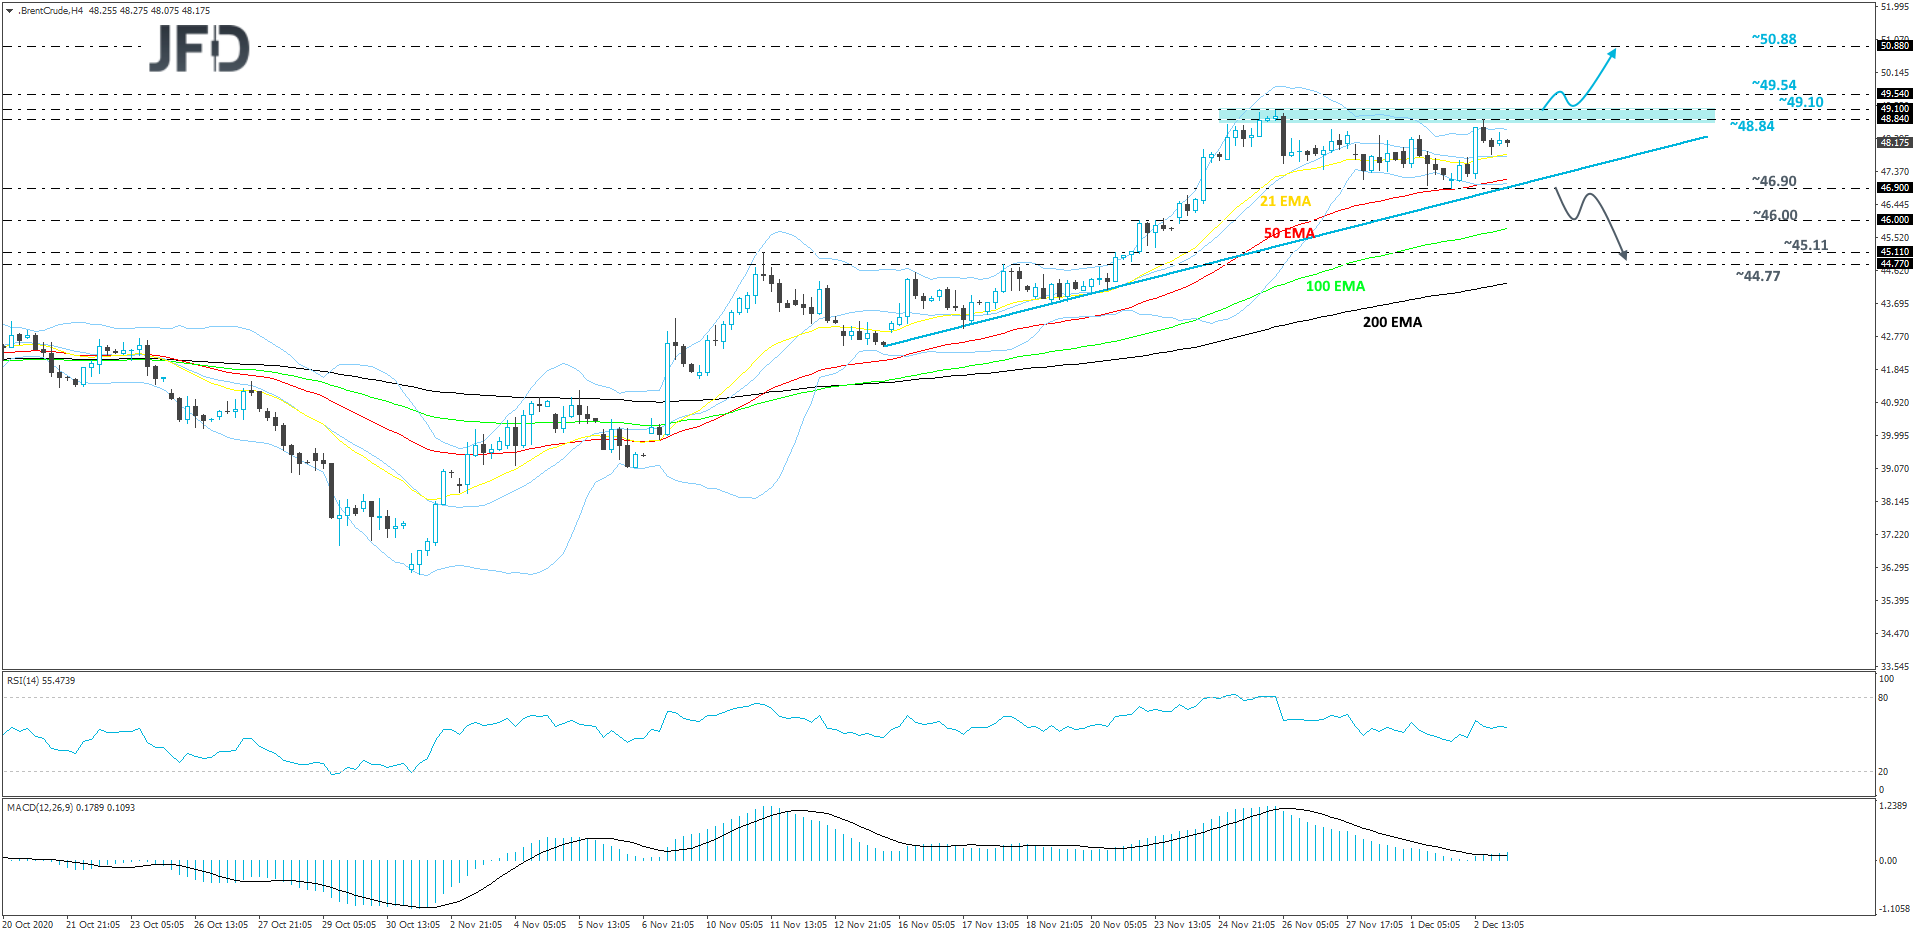 Brent oil 4-hour chart technical analysis